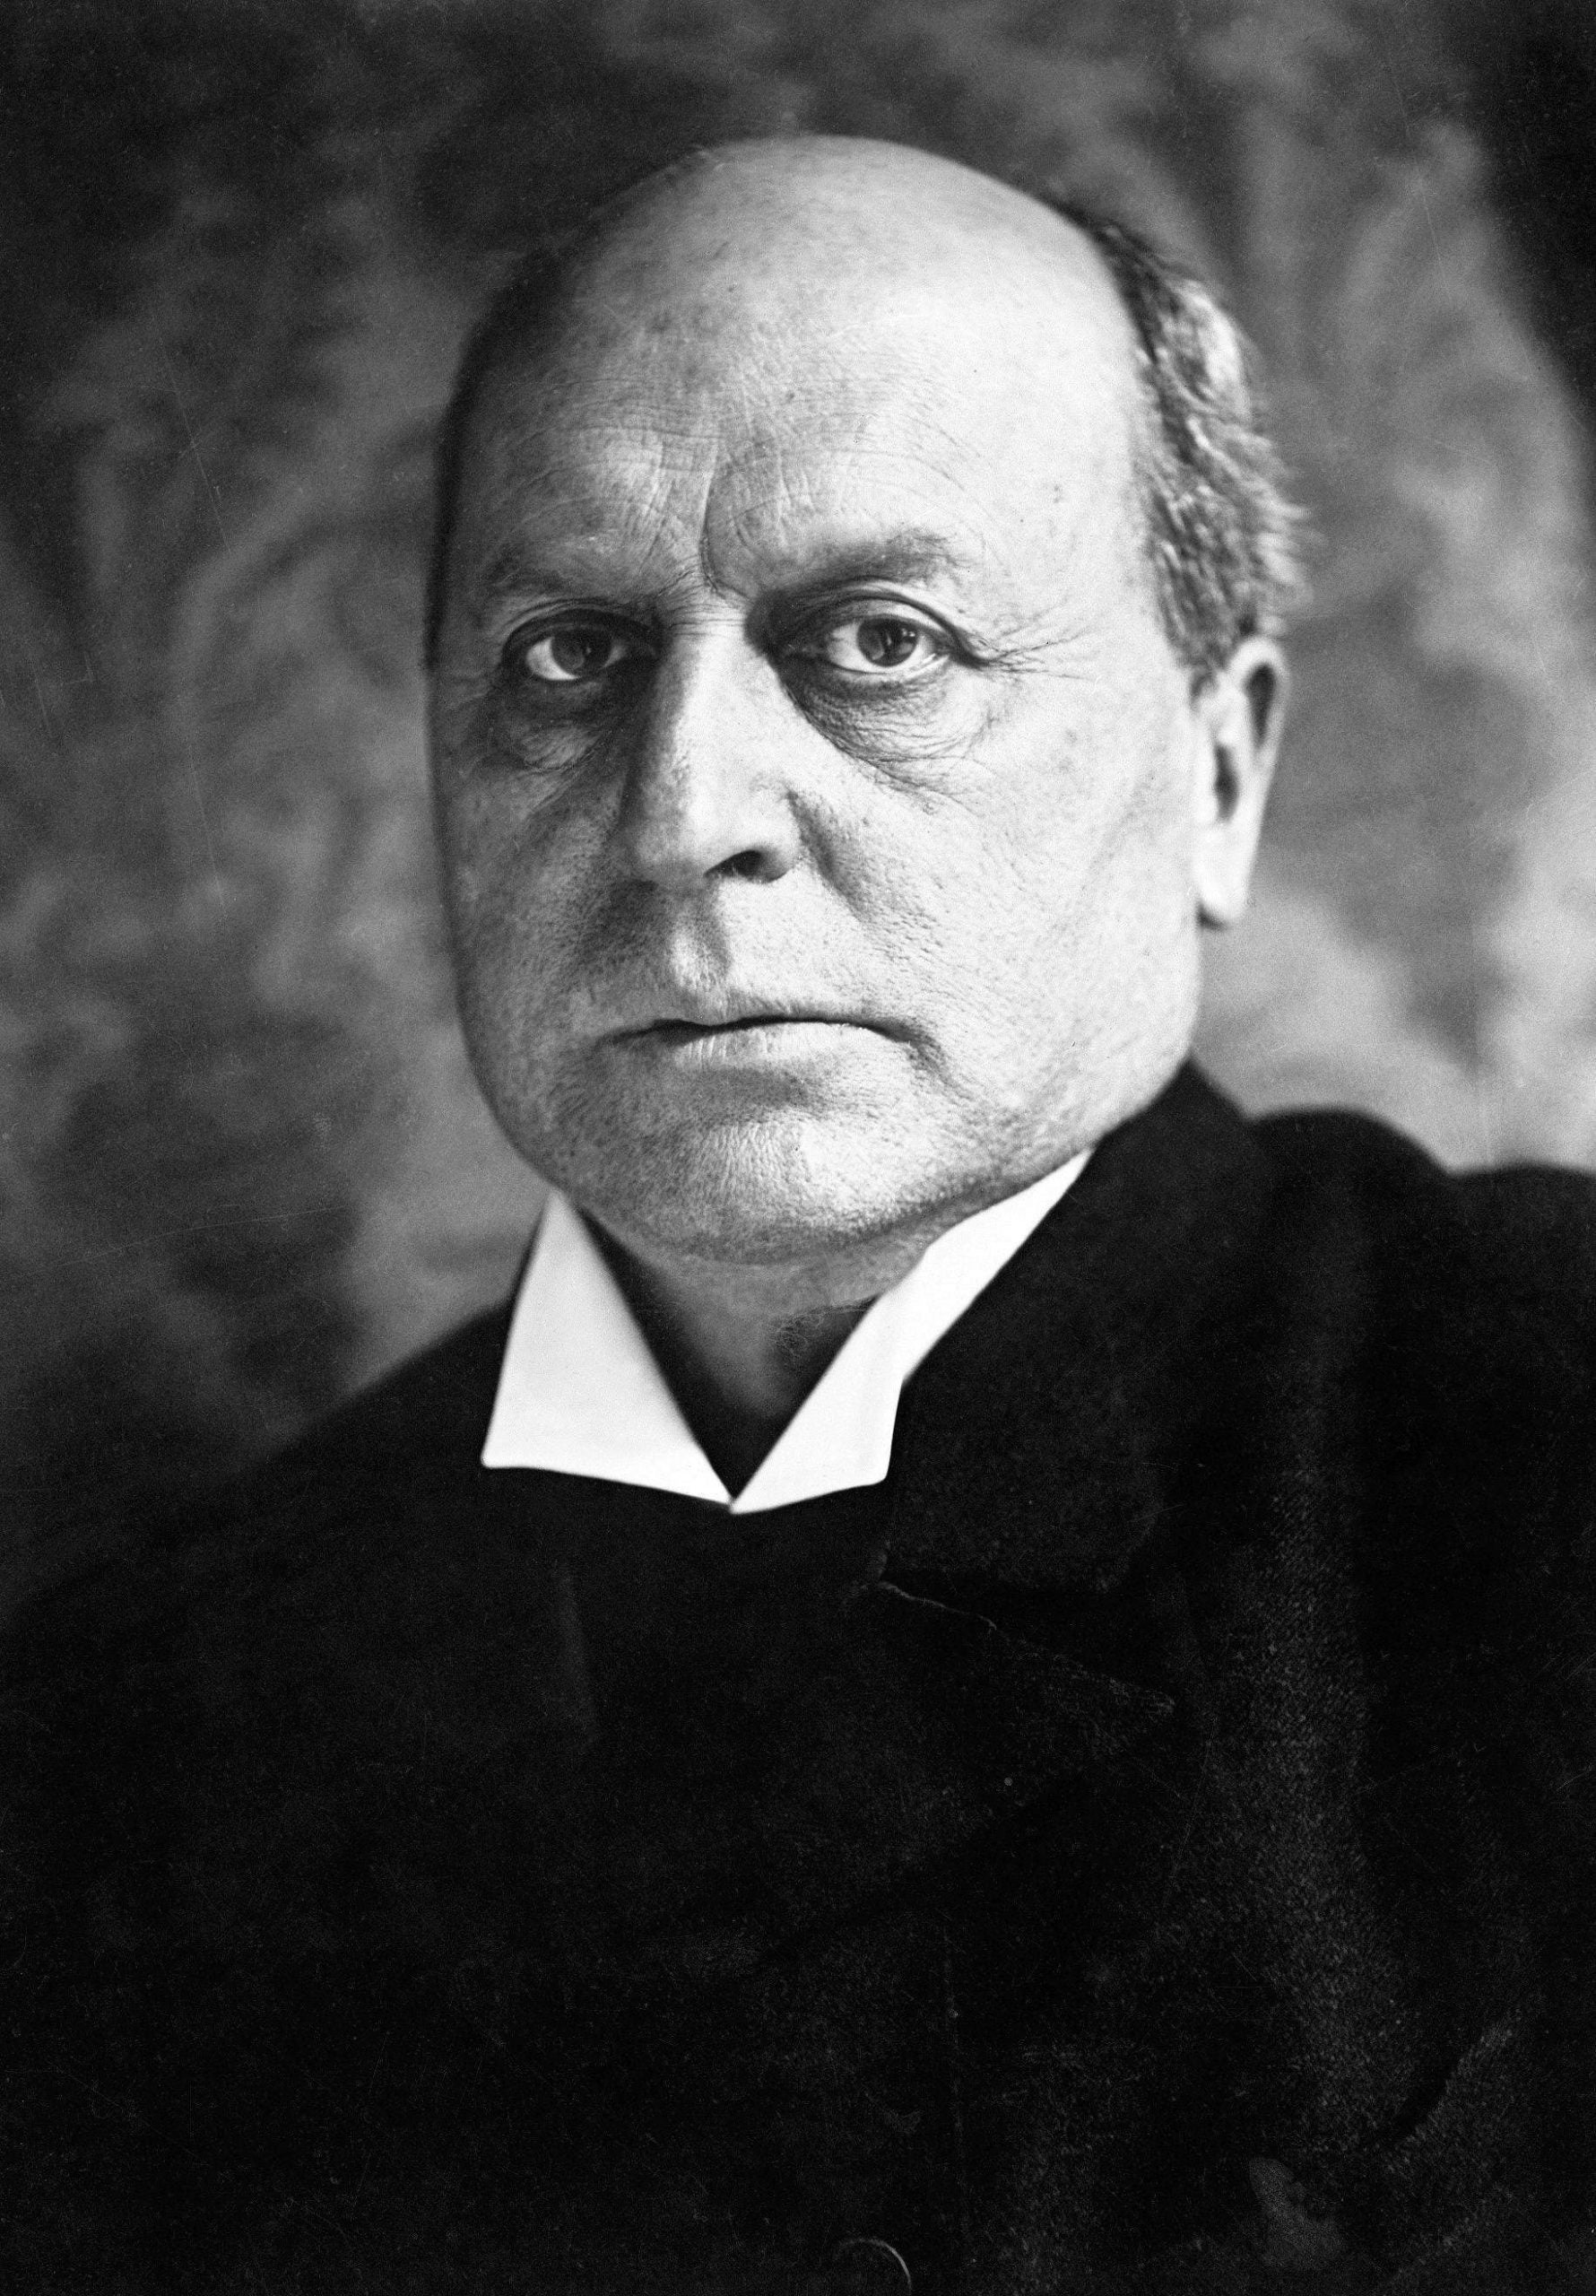 Master of reality: on Henry James' non-fiction